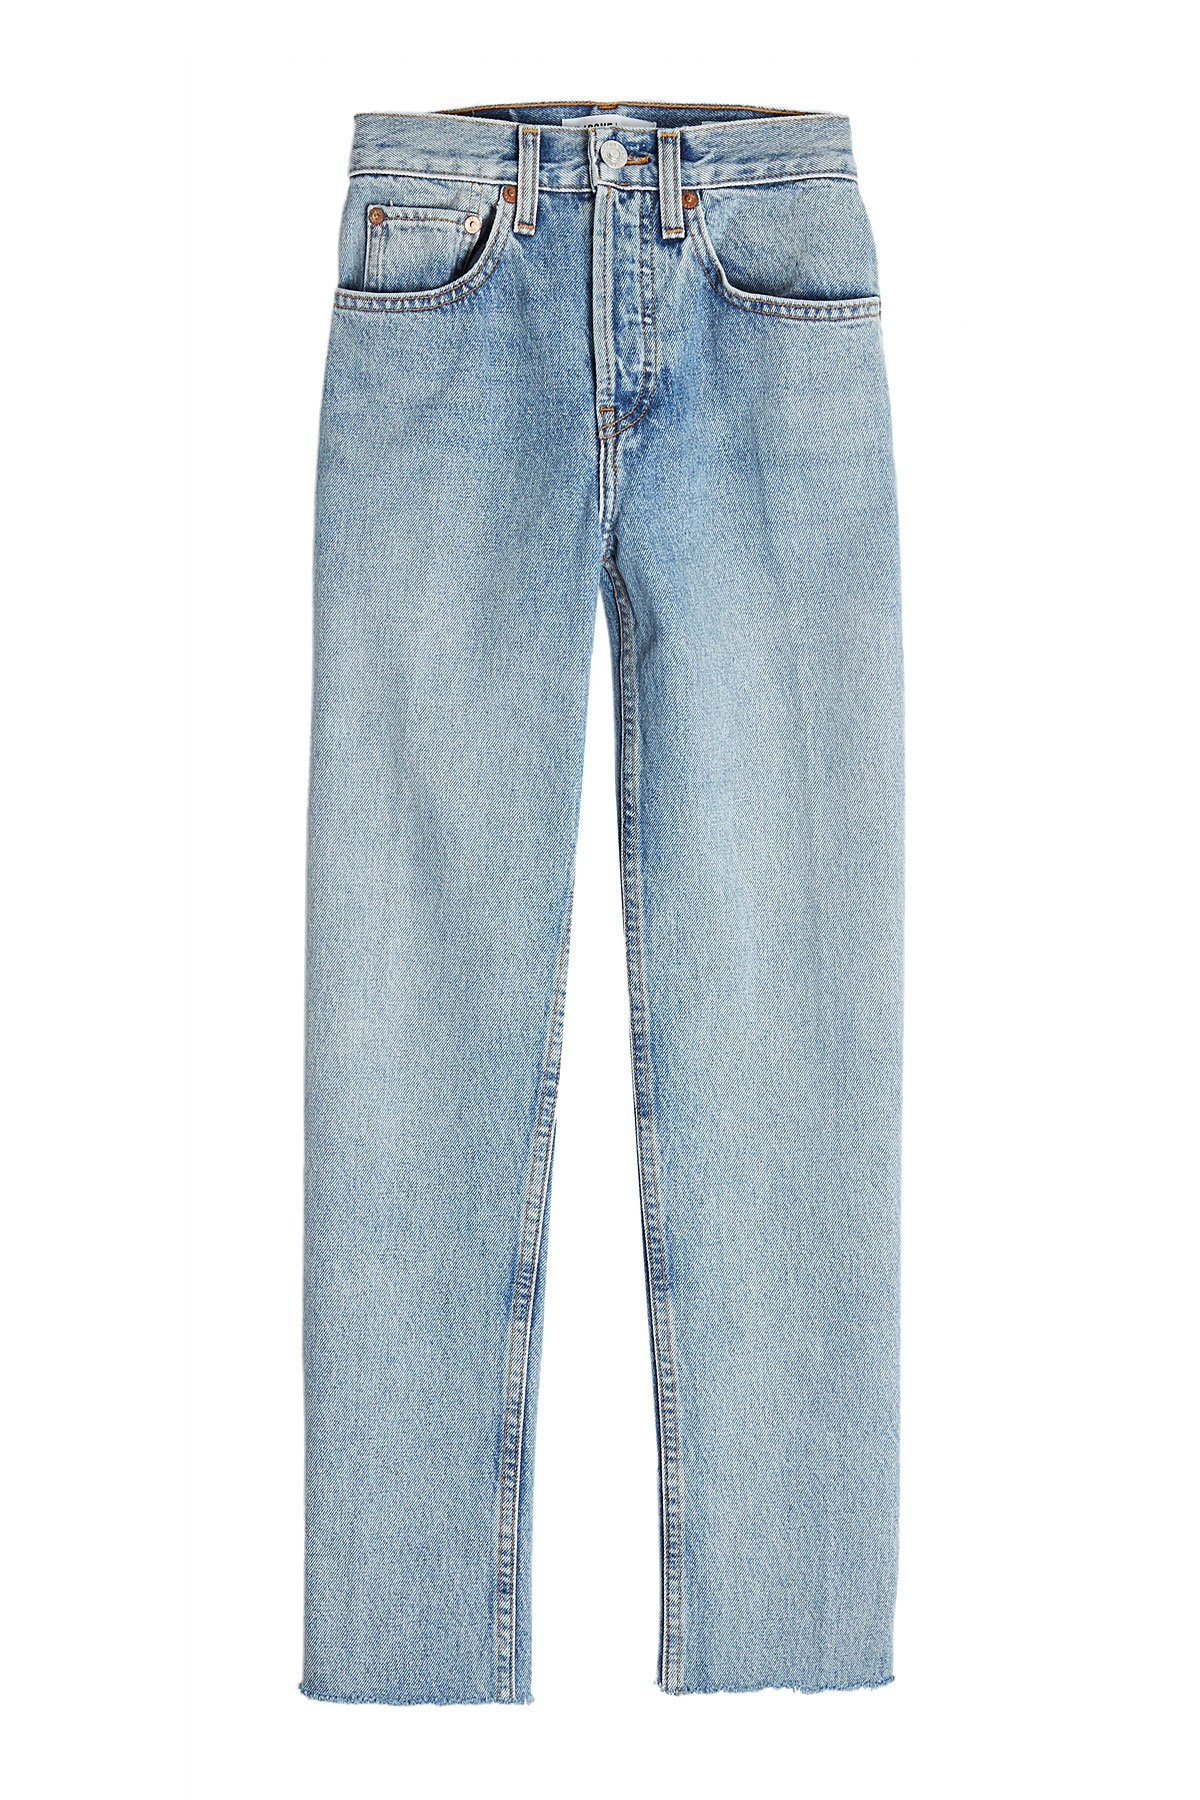 Stovepipe 27 High-Waisted Jeans Gr. 30